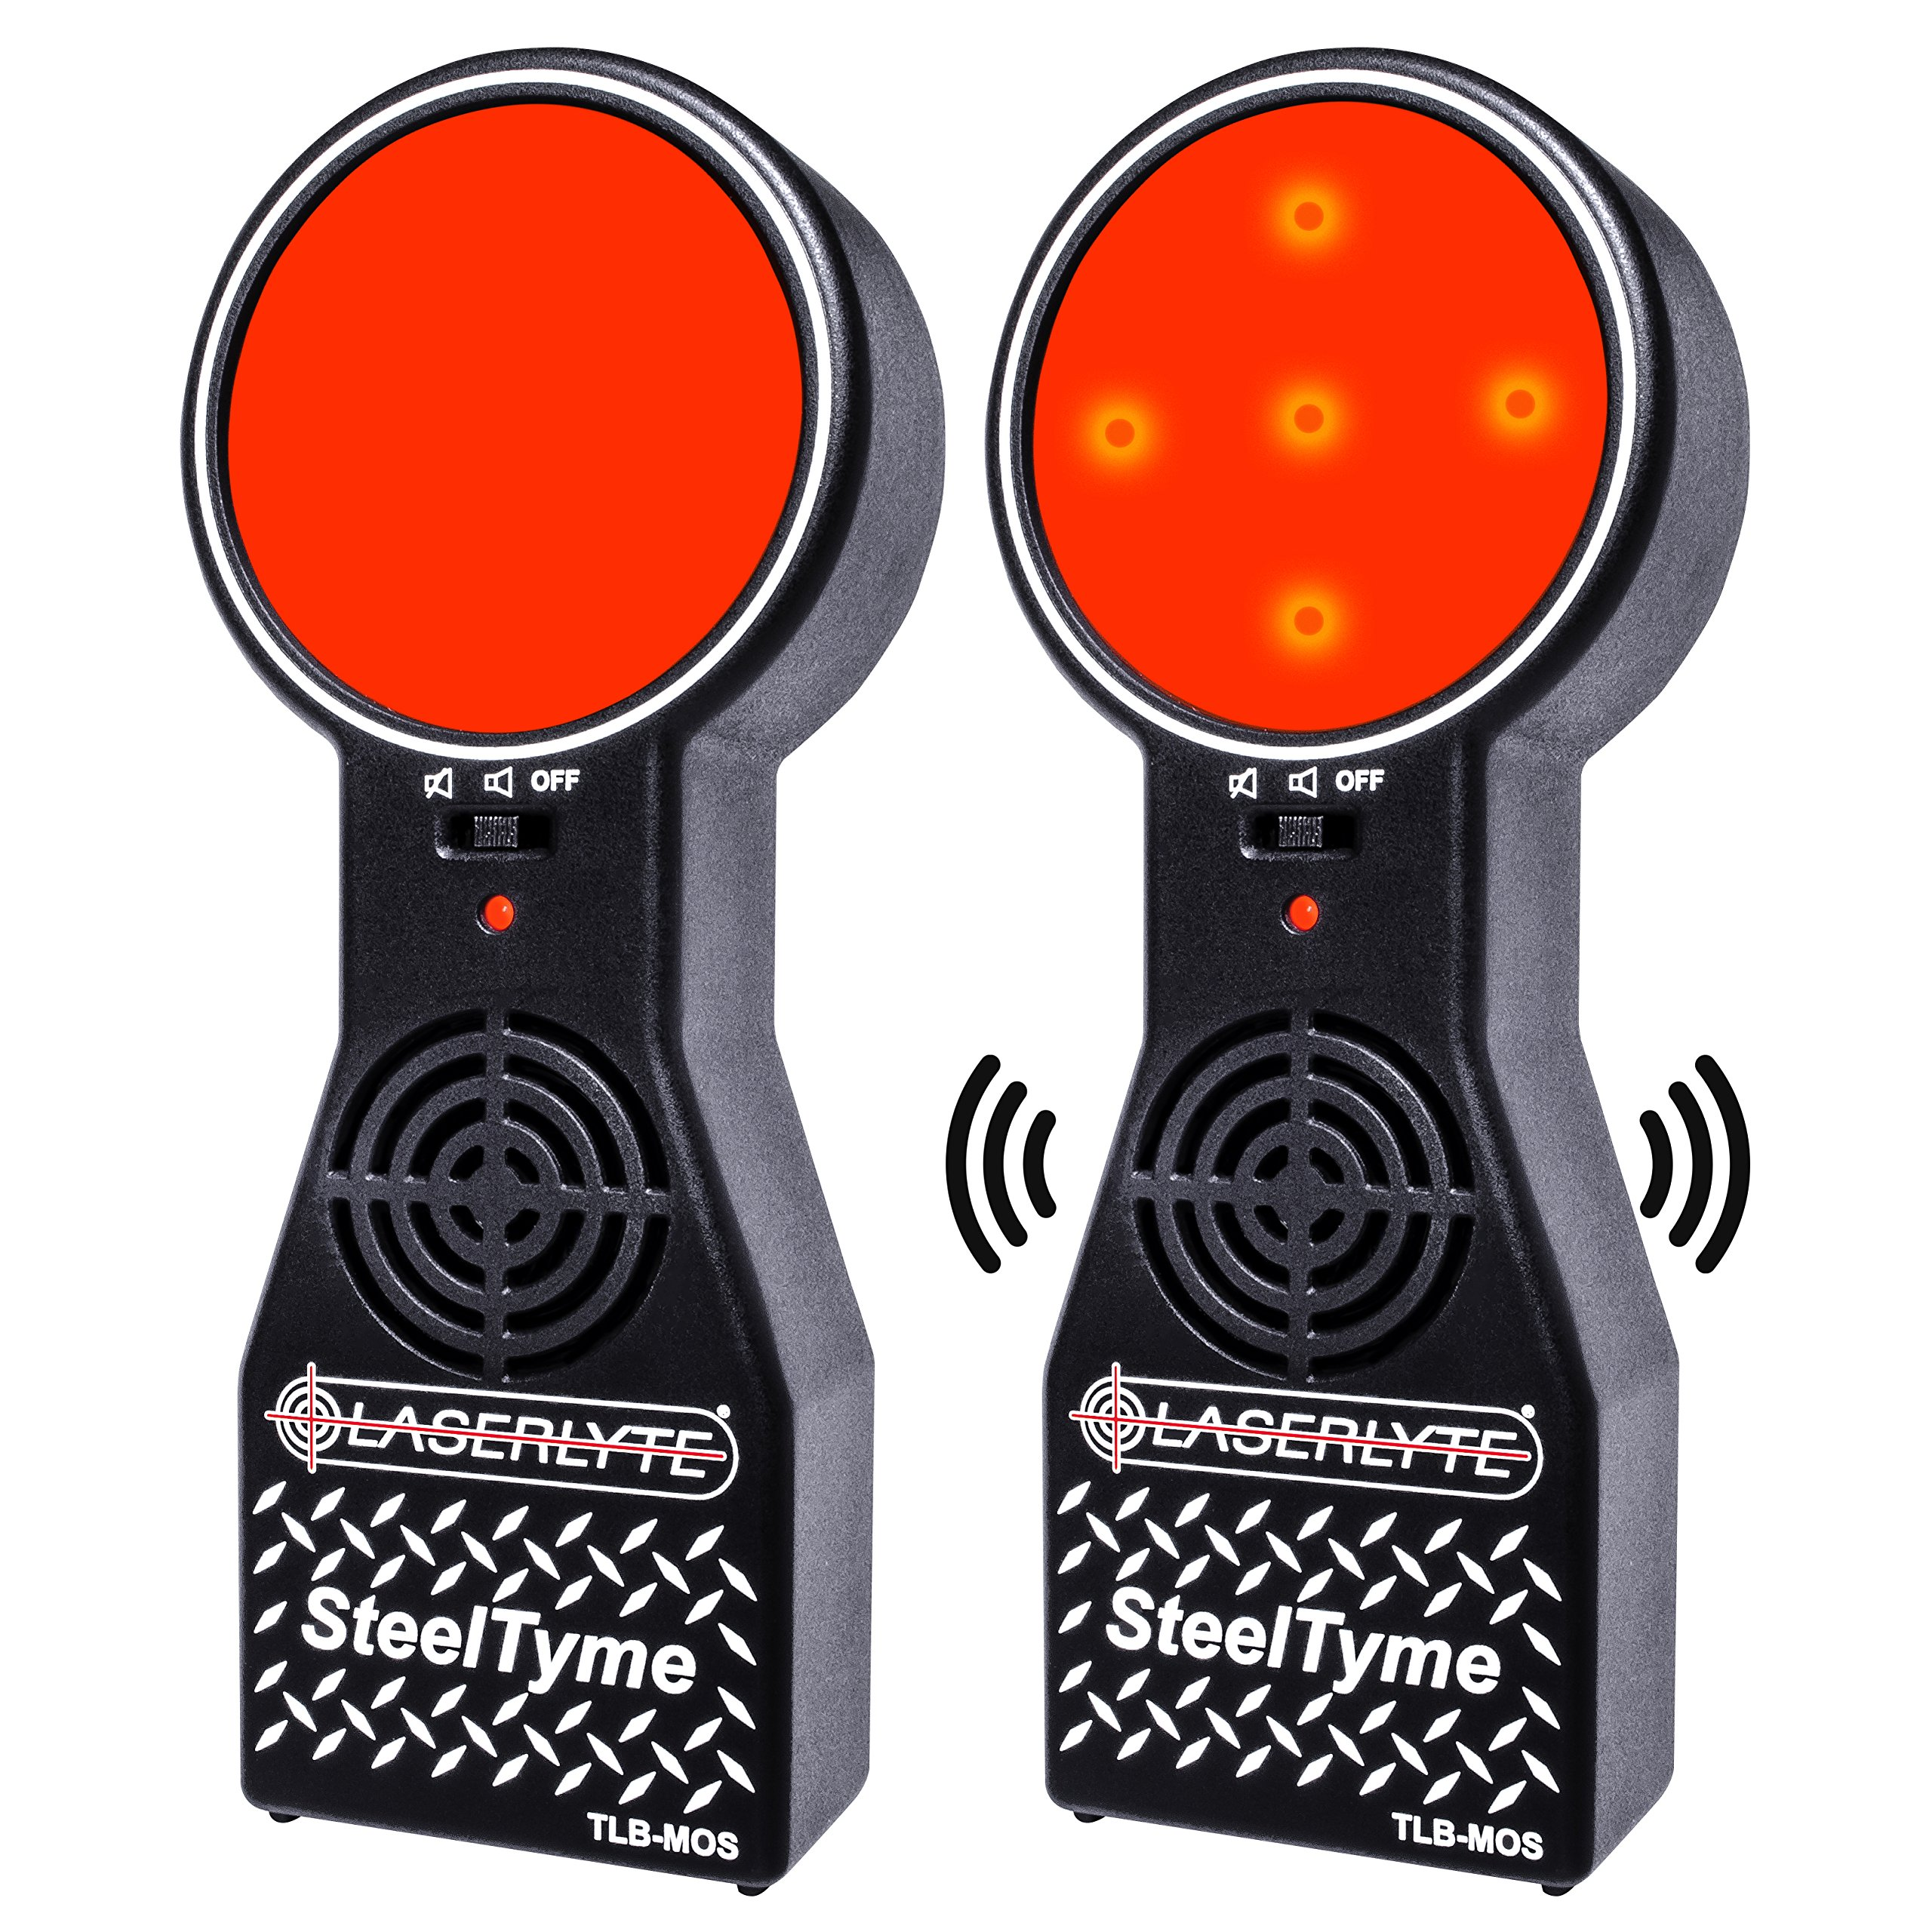 LaserLyte Trainer Target Steel Tyme by LaserLyte